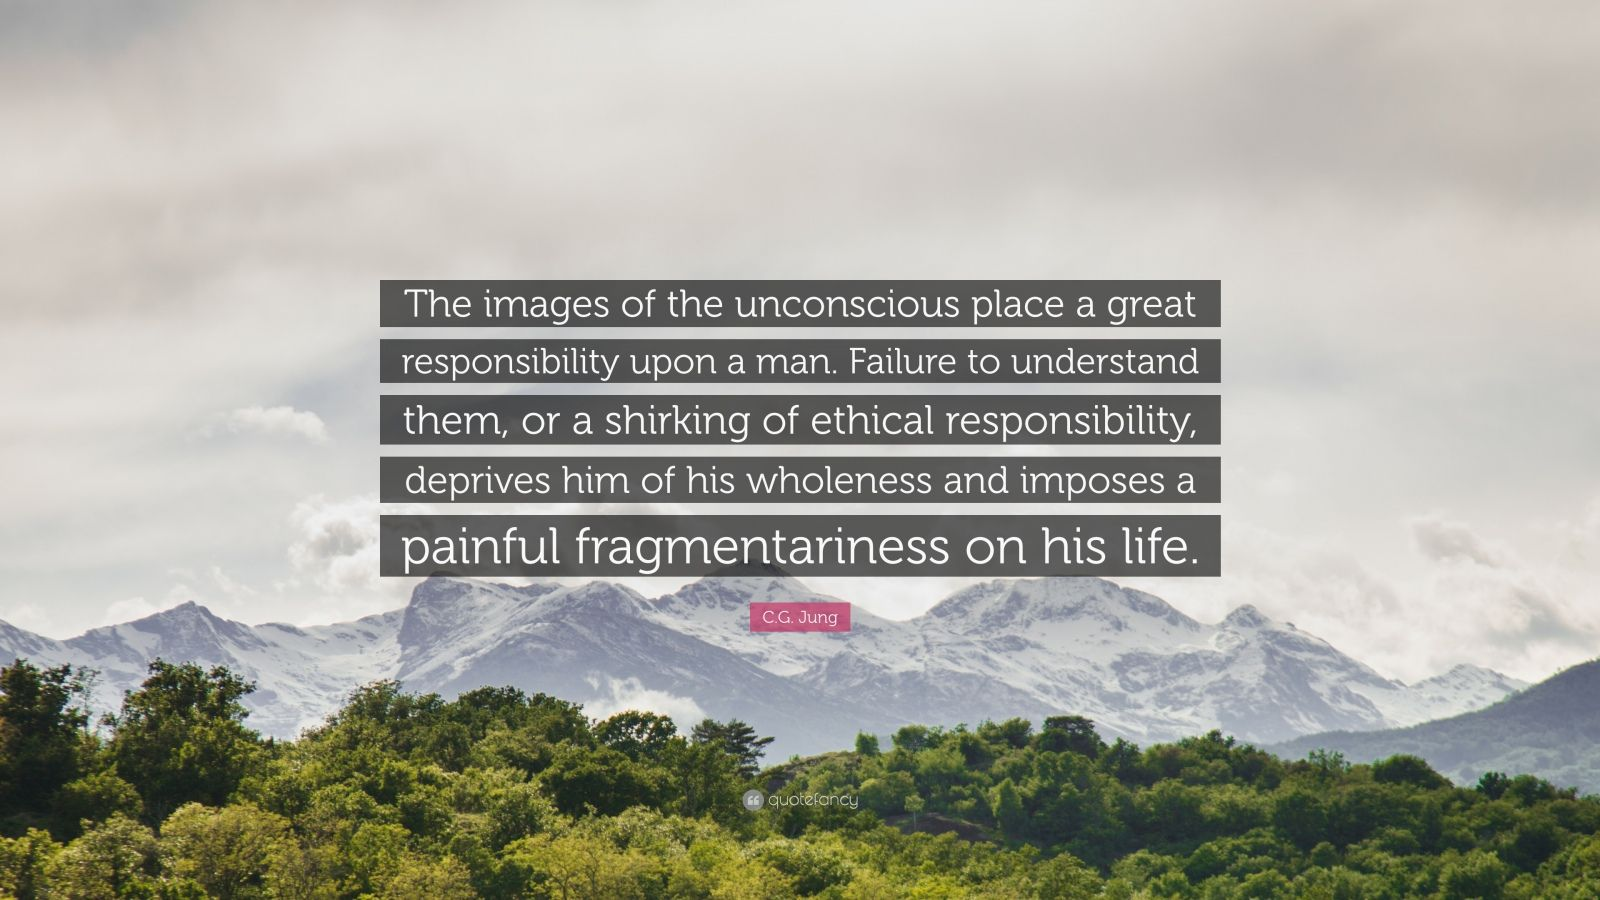 "C.G. Jung Quote: ""The images of the unconscious place a great responsibility upon a man. Failure to understand them, or a shirking of ethical responsibility, deprives him of his wholeness and imposes a painful fragmentariness on his life."""